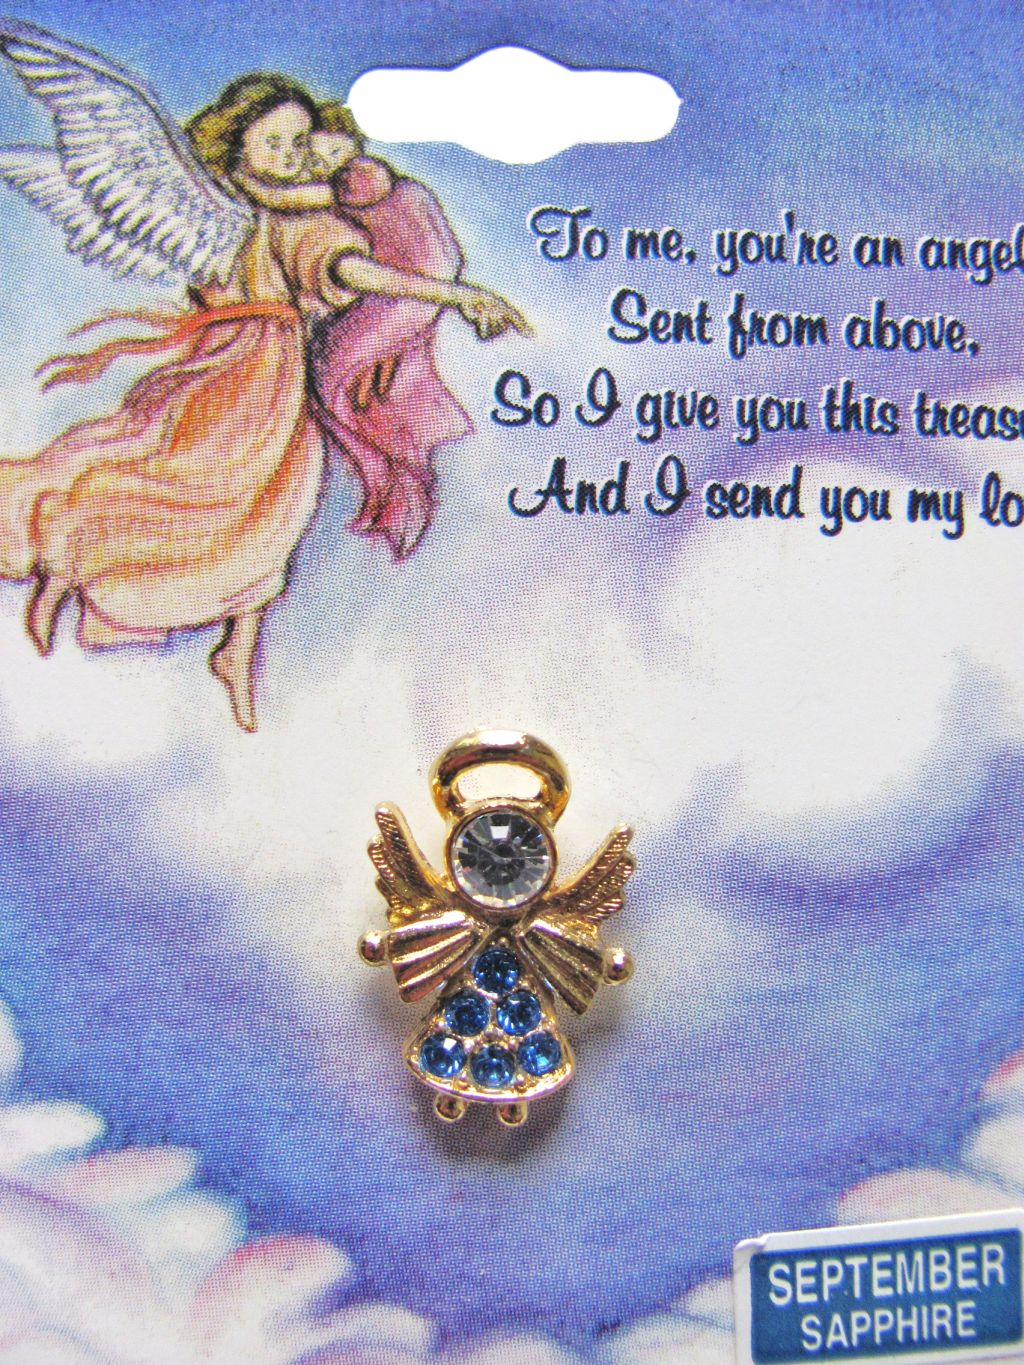 Sapphire-September Birthstone Angel Pin Gold Tone, Genuine Austrian Crystals